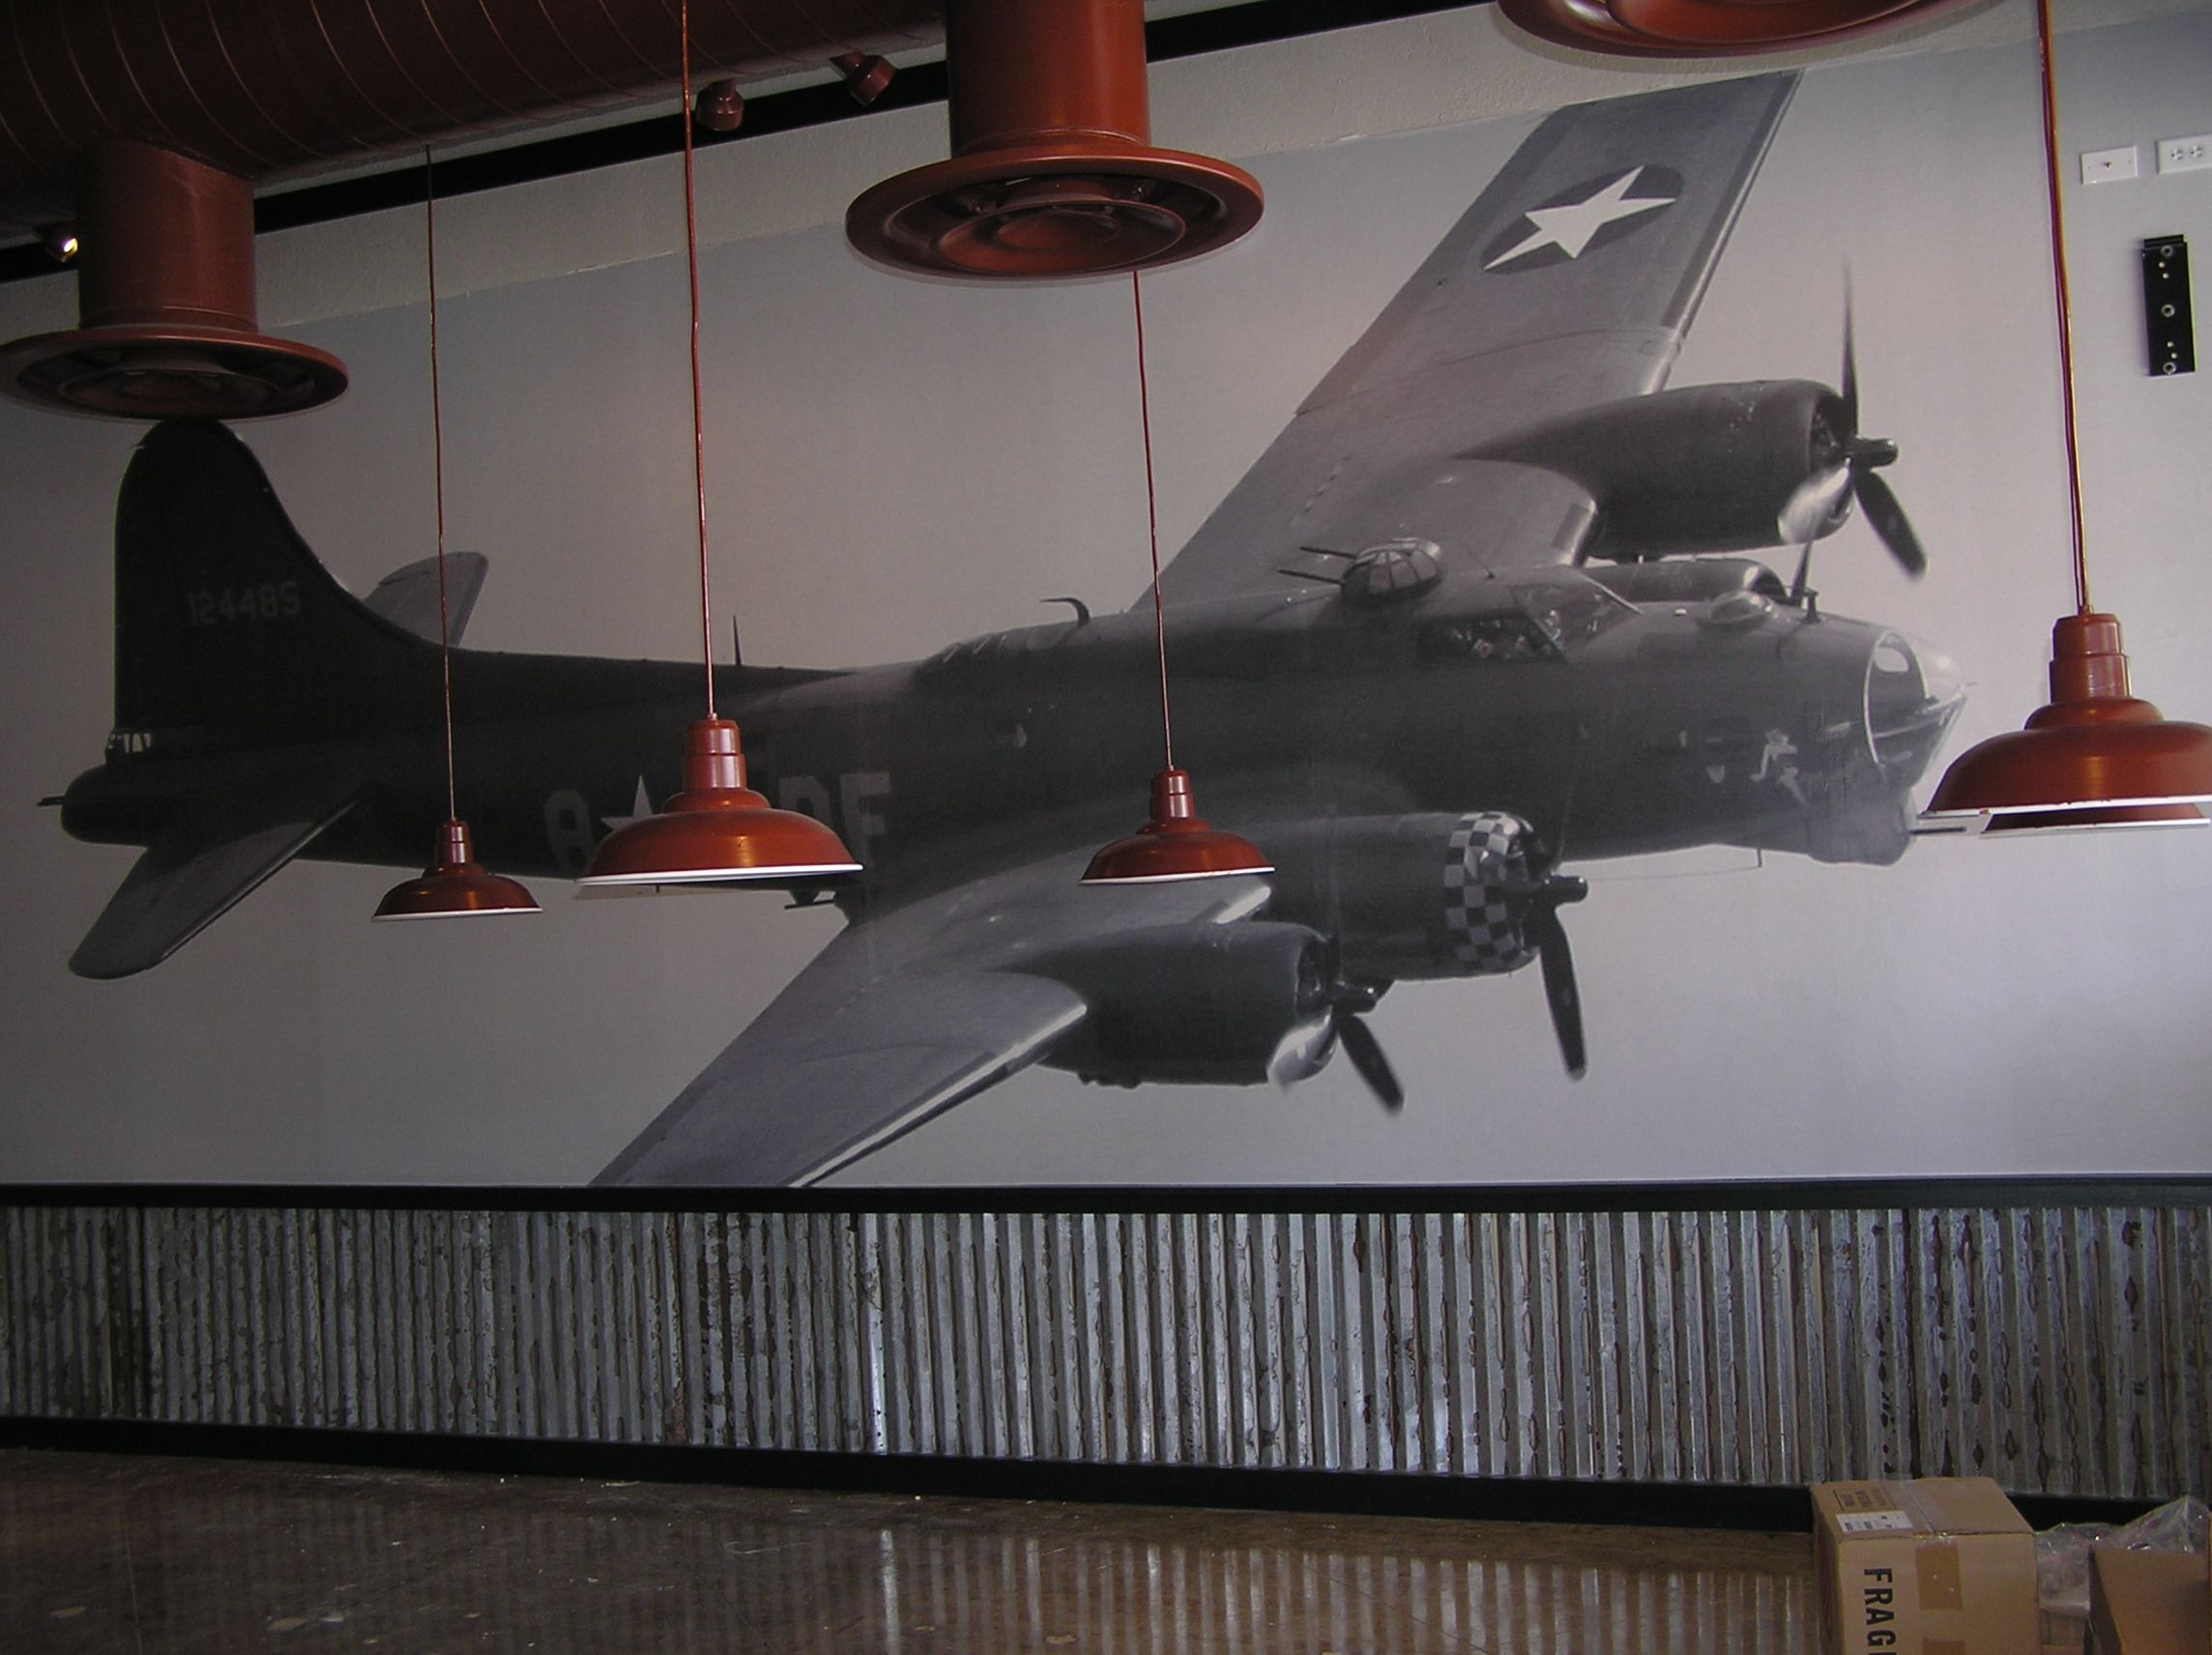 wingstop in seguin tx fun mural to install walls wallpaper find this pin and more on walls wallpaper murals torn paper so many walls so little time by bonnyemanning